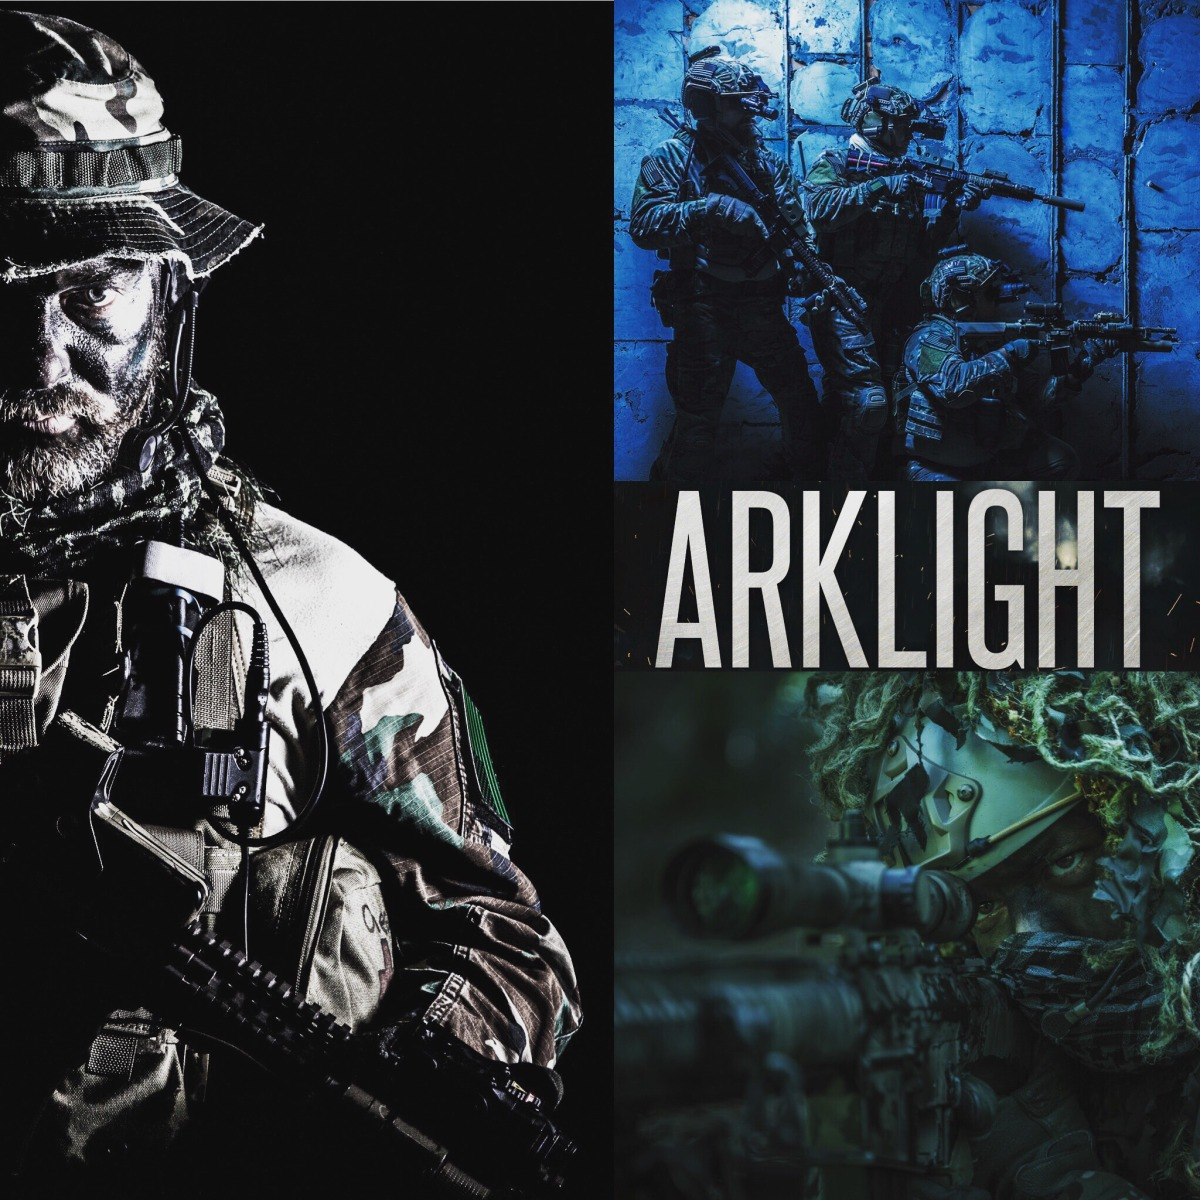 What's Arklight all about anyway?